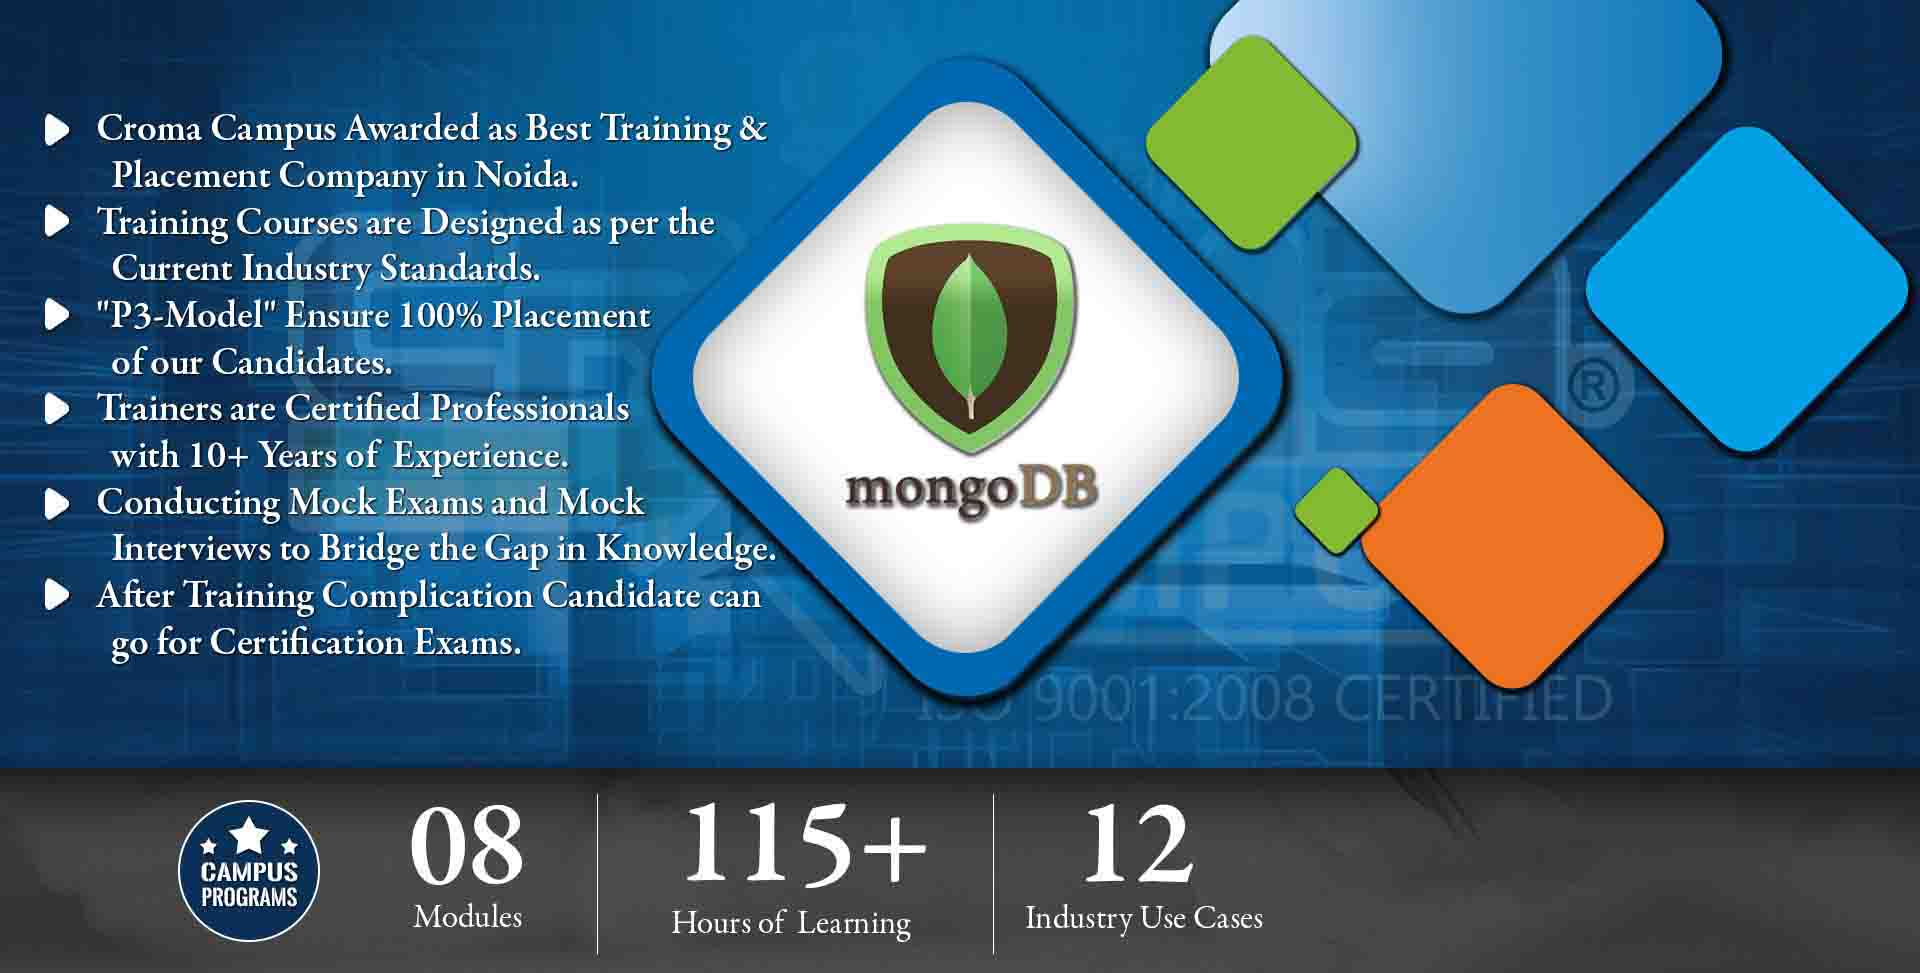 MongoDB Training in Delhi - Croma Campus